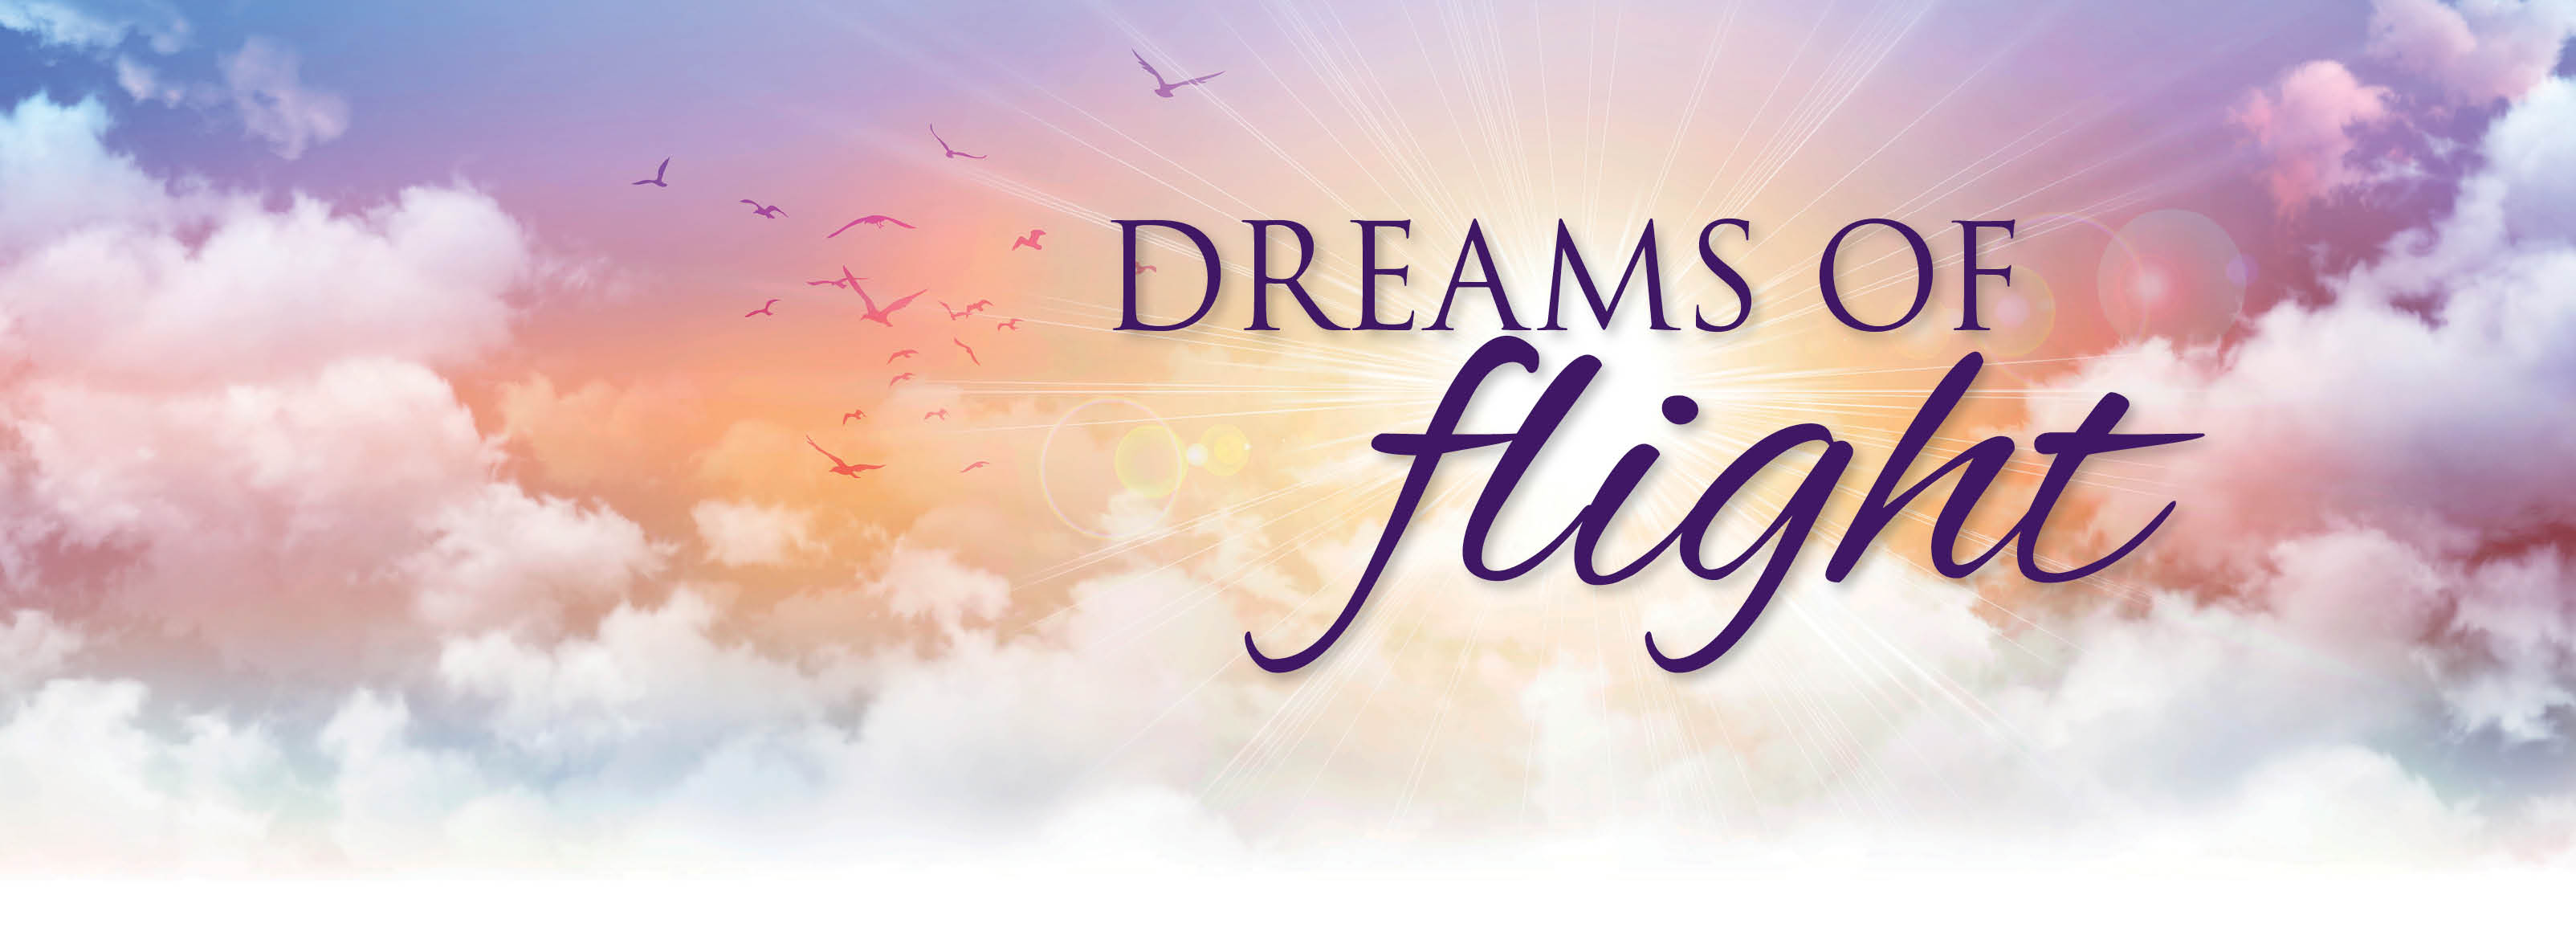 dreams-of-flight-header